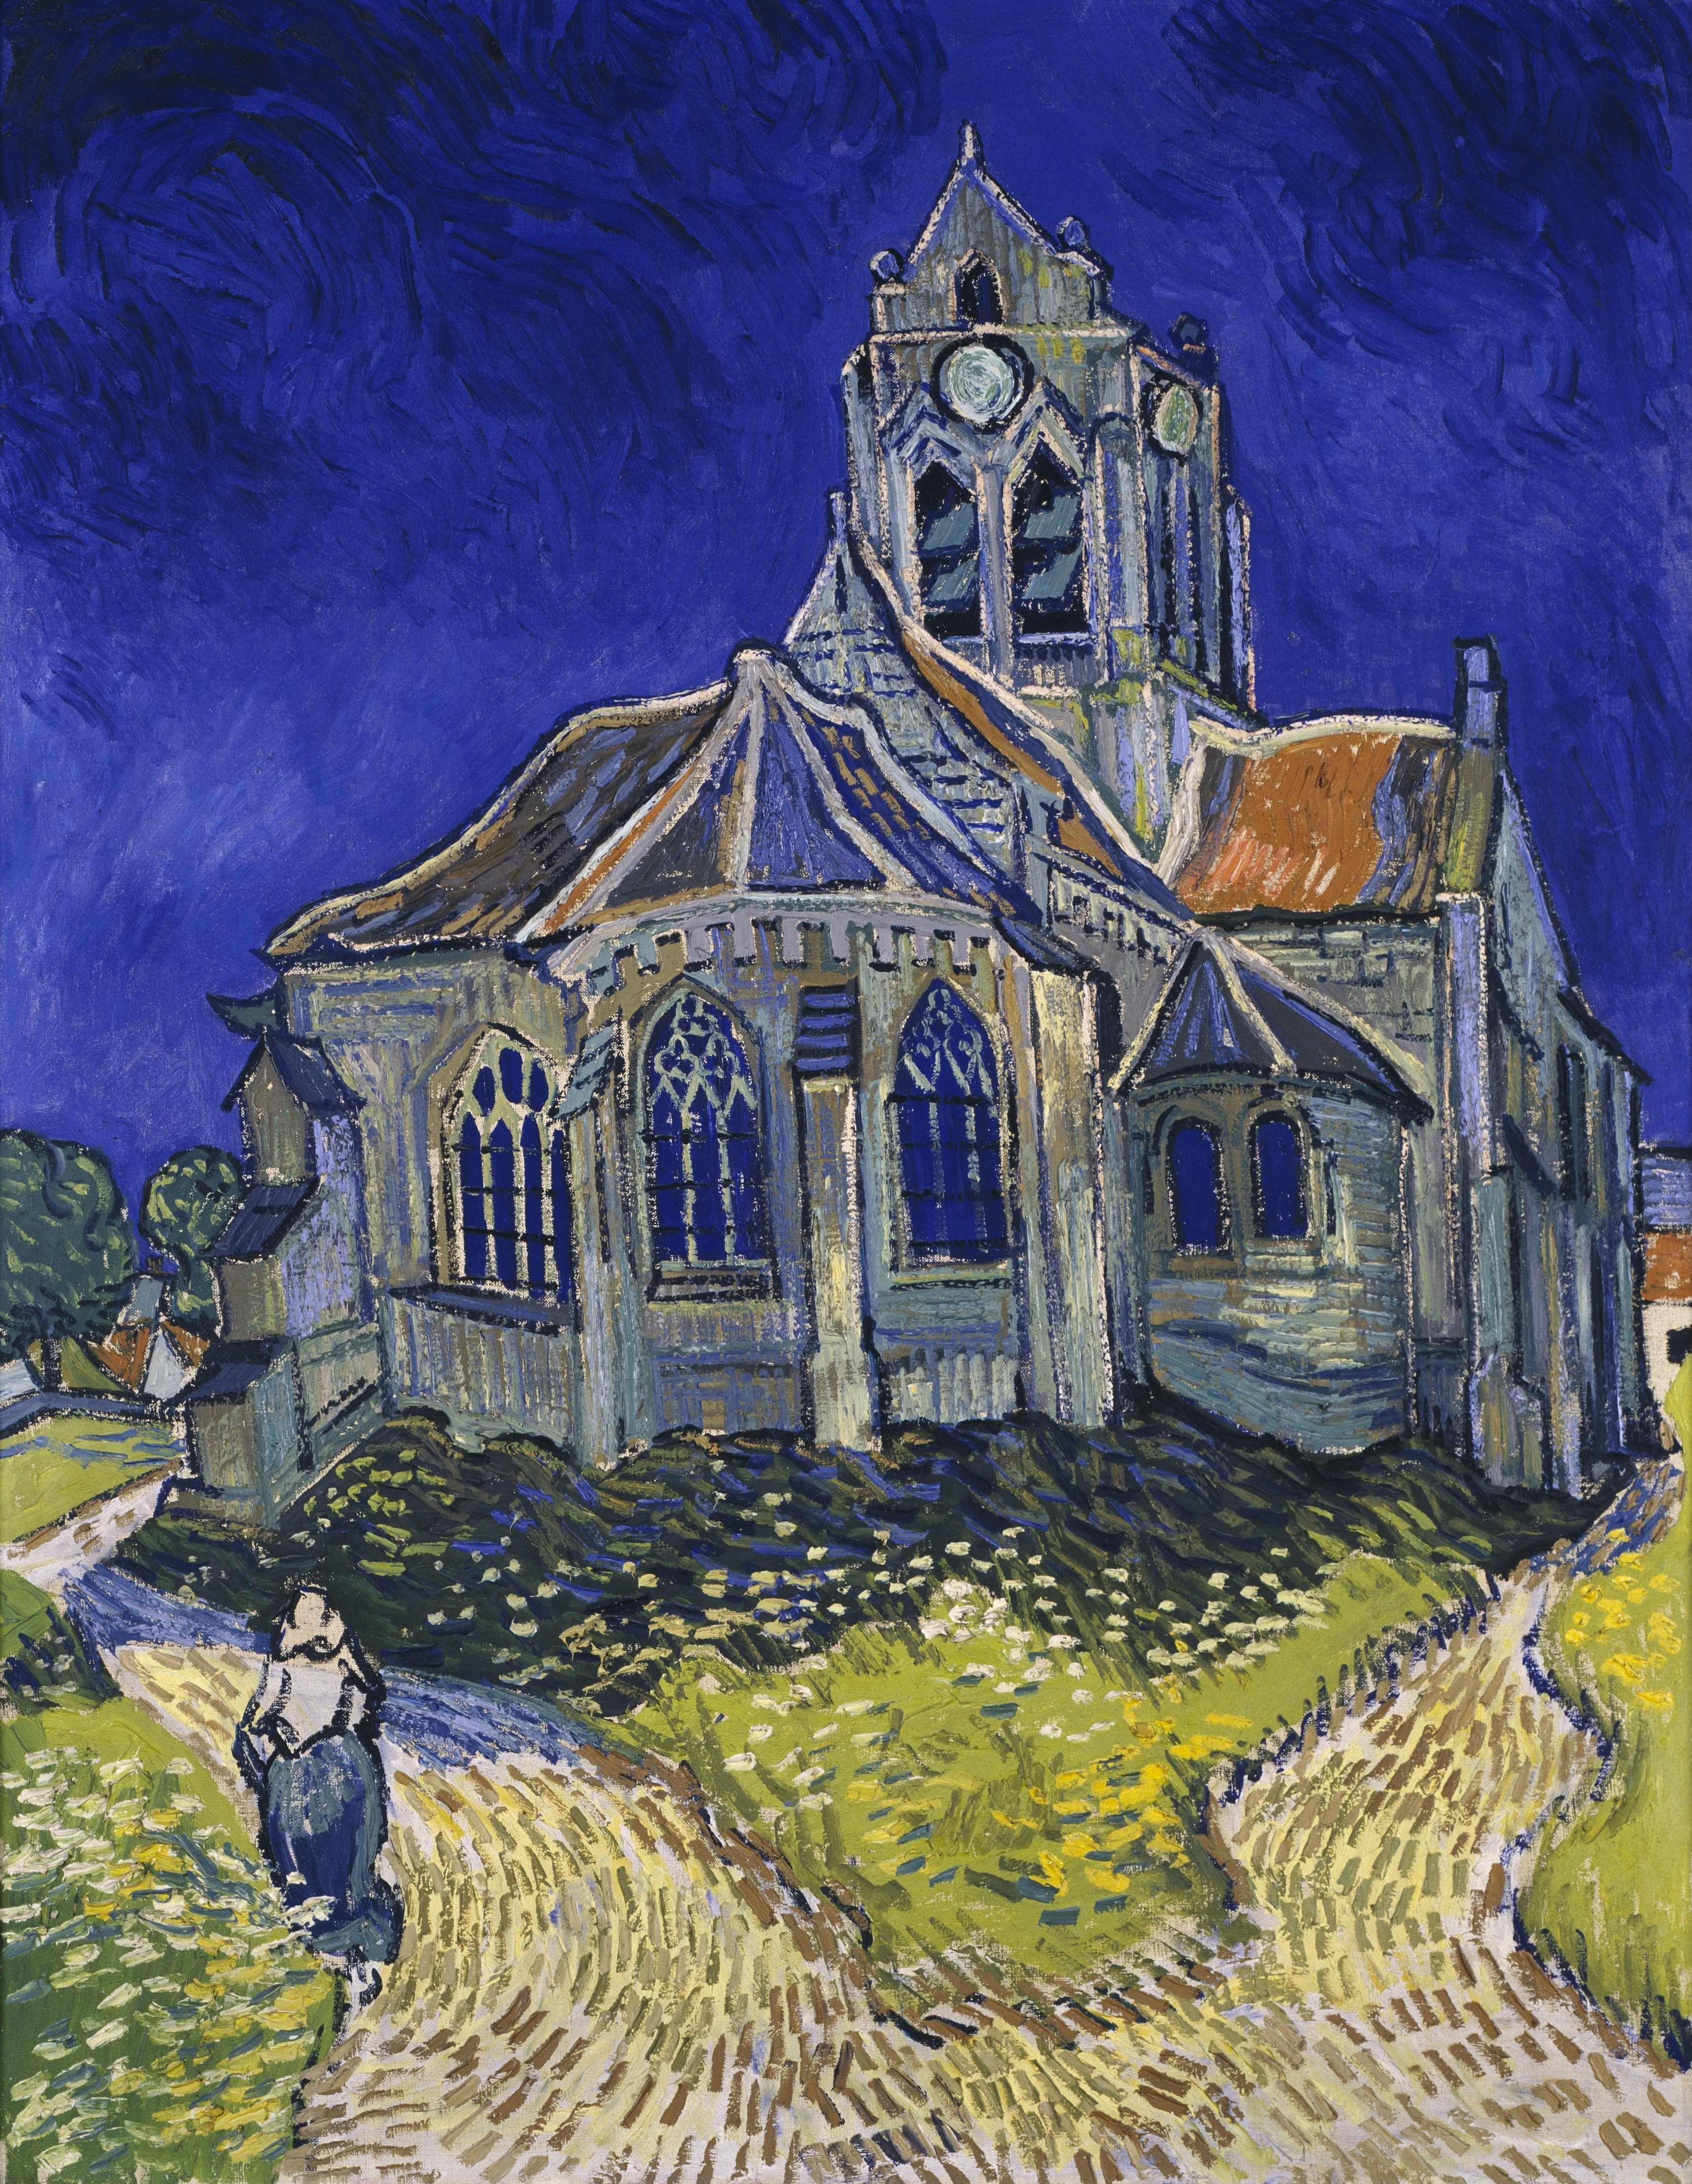 file vincent van gogh the church in auvers sur oise view from the chevet google art project. Black Bedroom Furniture Sets. Home Design Ideas